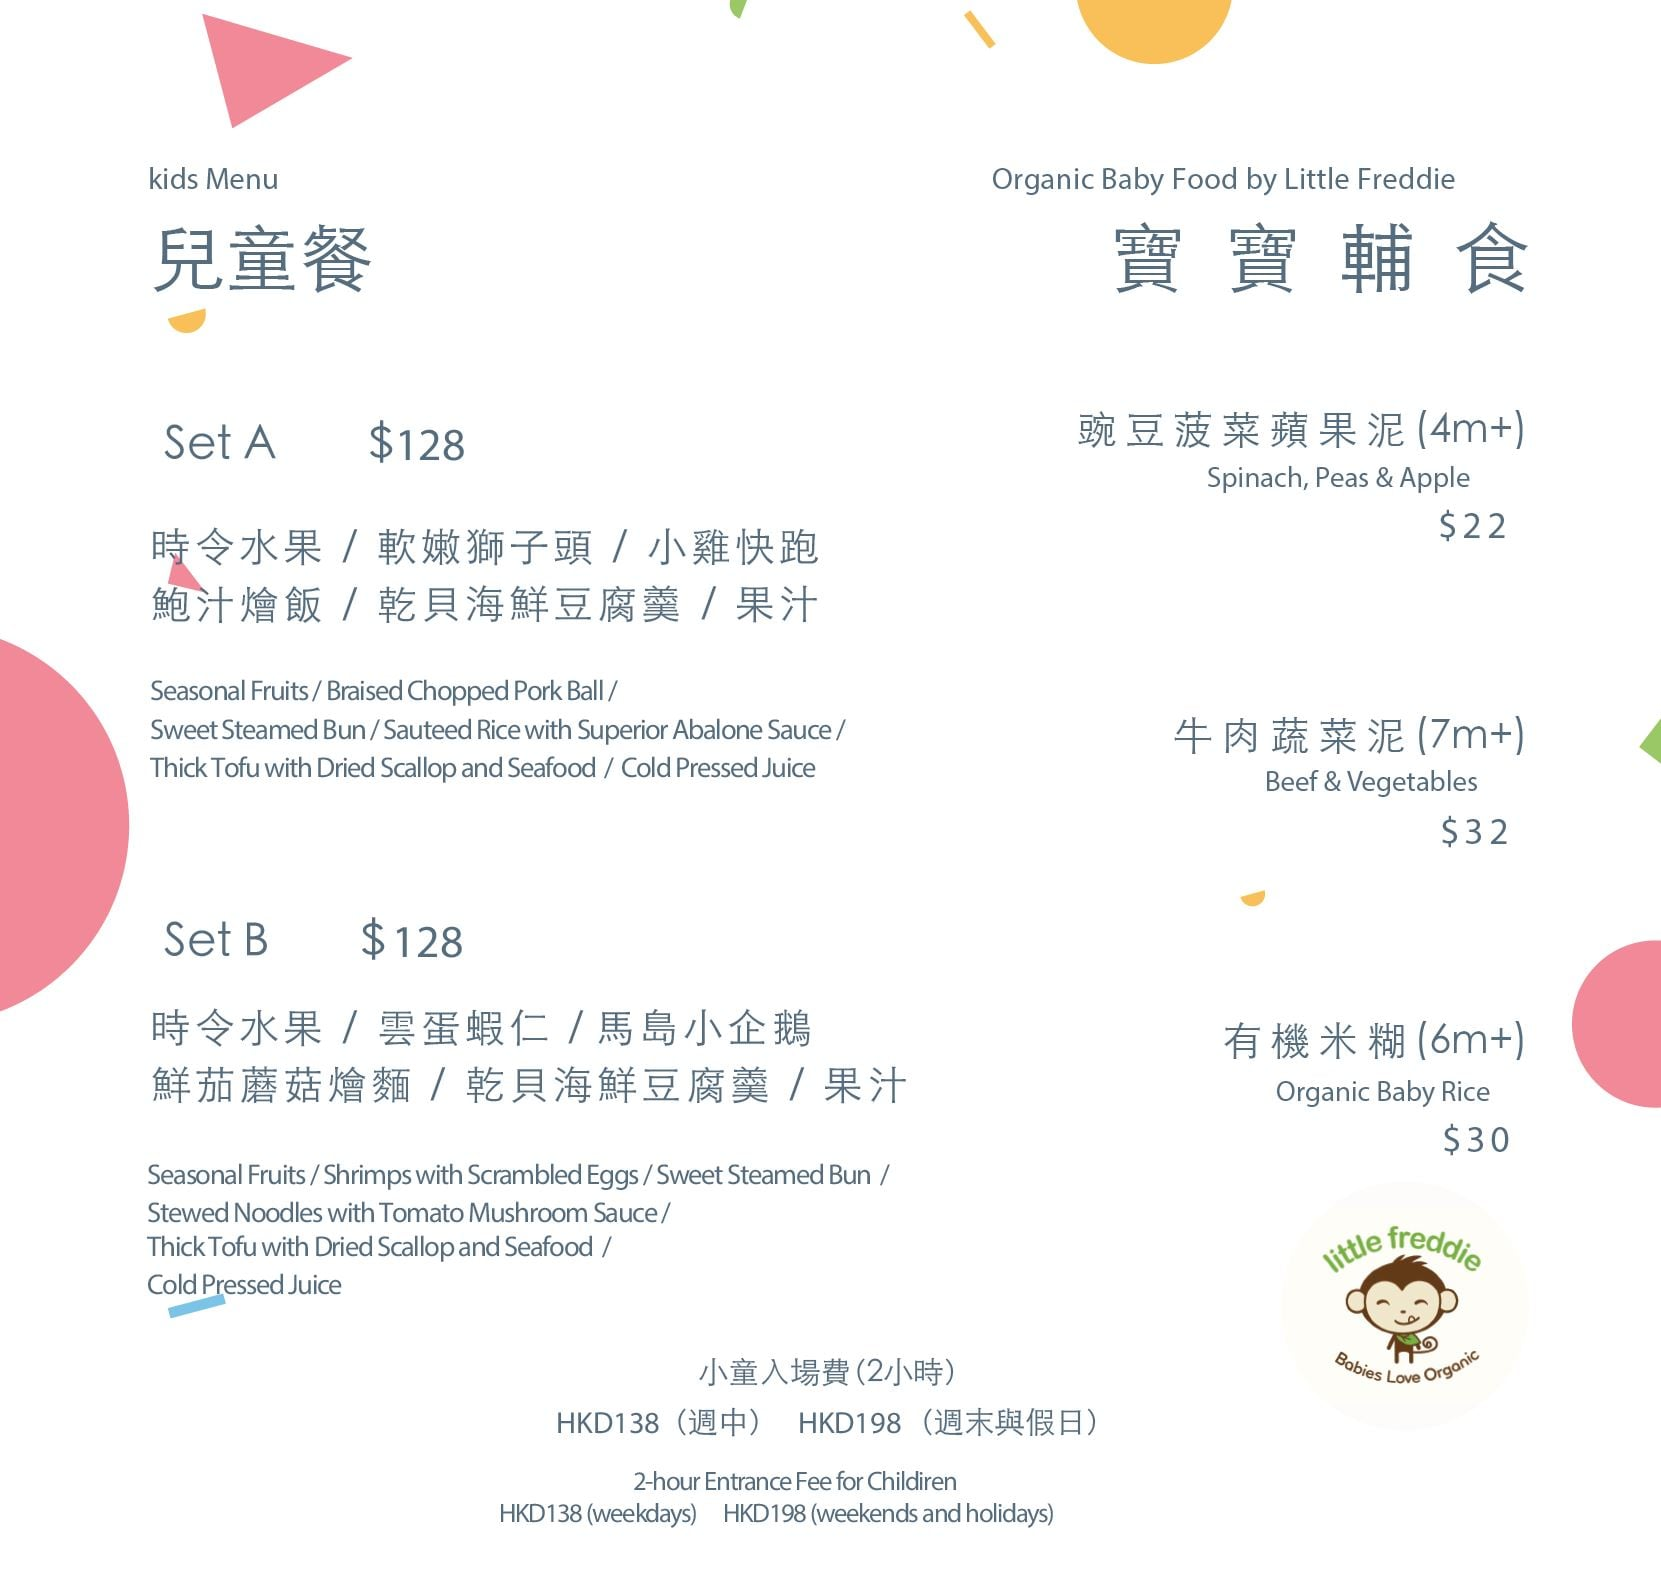 Origami Cafe's kids menu